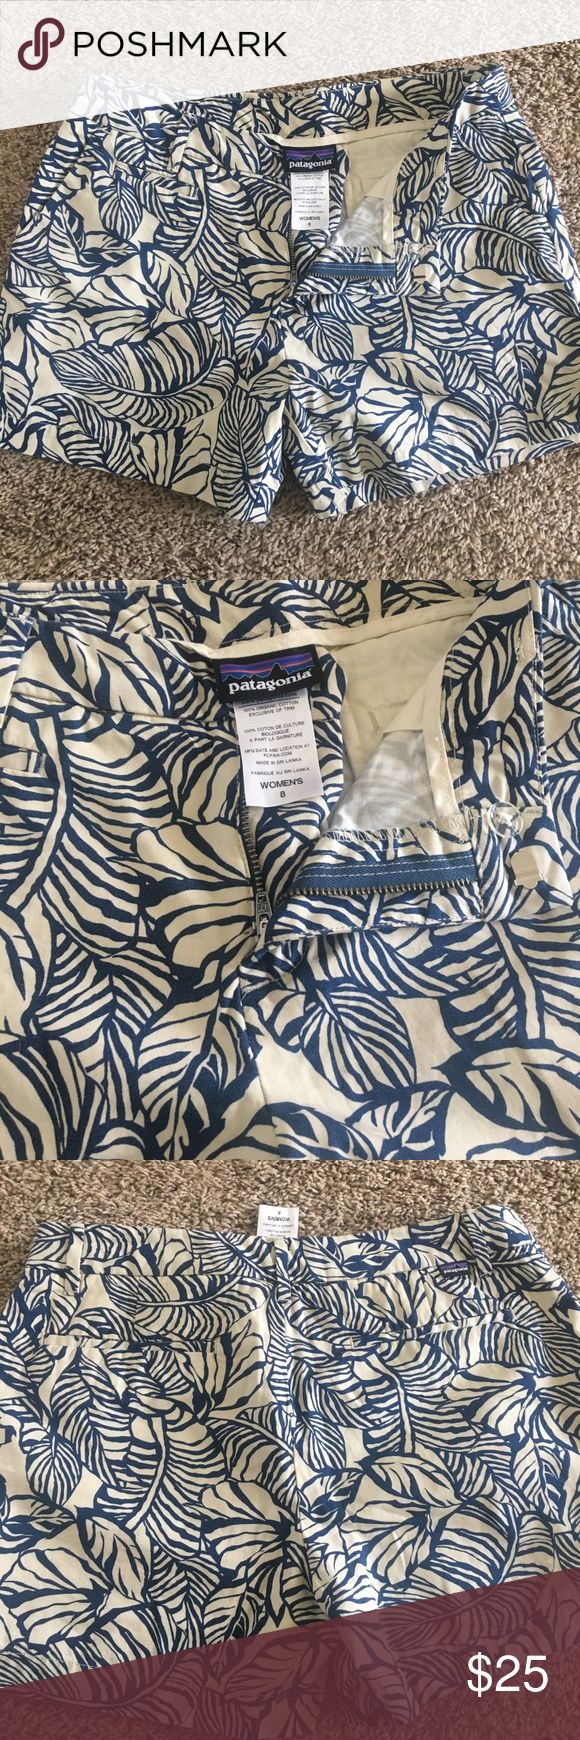 Patagonia shorts Women's floral print shorts, blue with cream/light tan colors. These are like new condition without any flaws. Size 8, I would say that these type shorts run a bit small. Patagonia Shorts